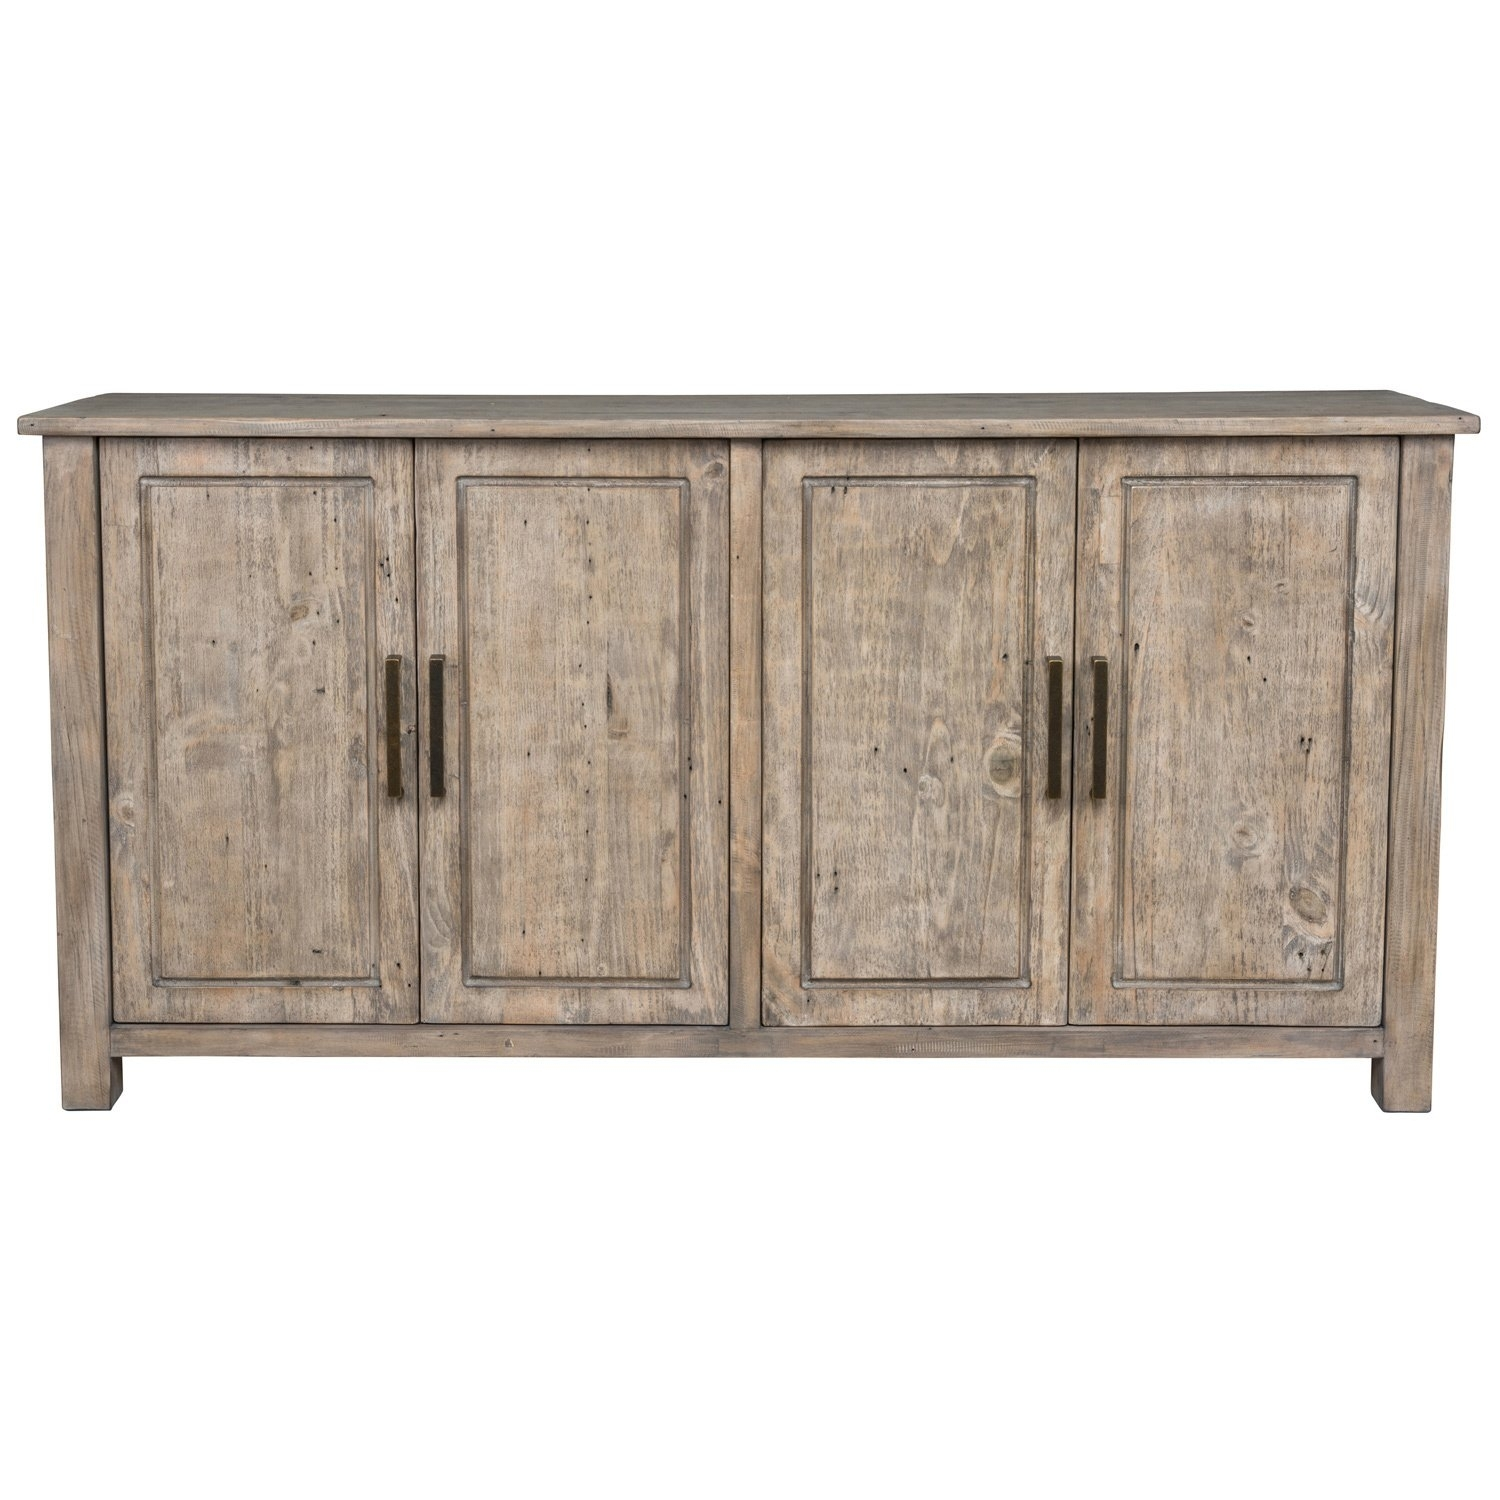 Shop Aires Reclaimed Wood 72 Inch Sideboardkosas Home – Free Pertaining To 2017 Reclaimed Pine Turquoise 4 Door Sideboards (View 20 of 20)